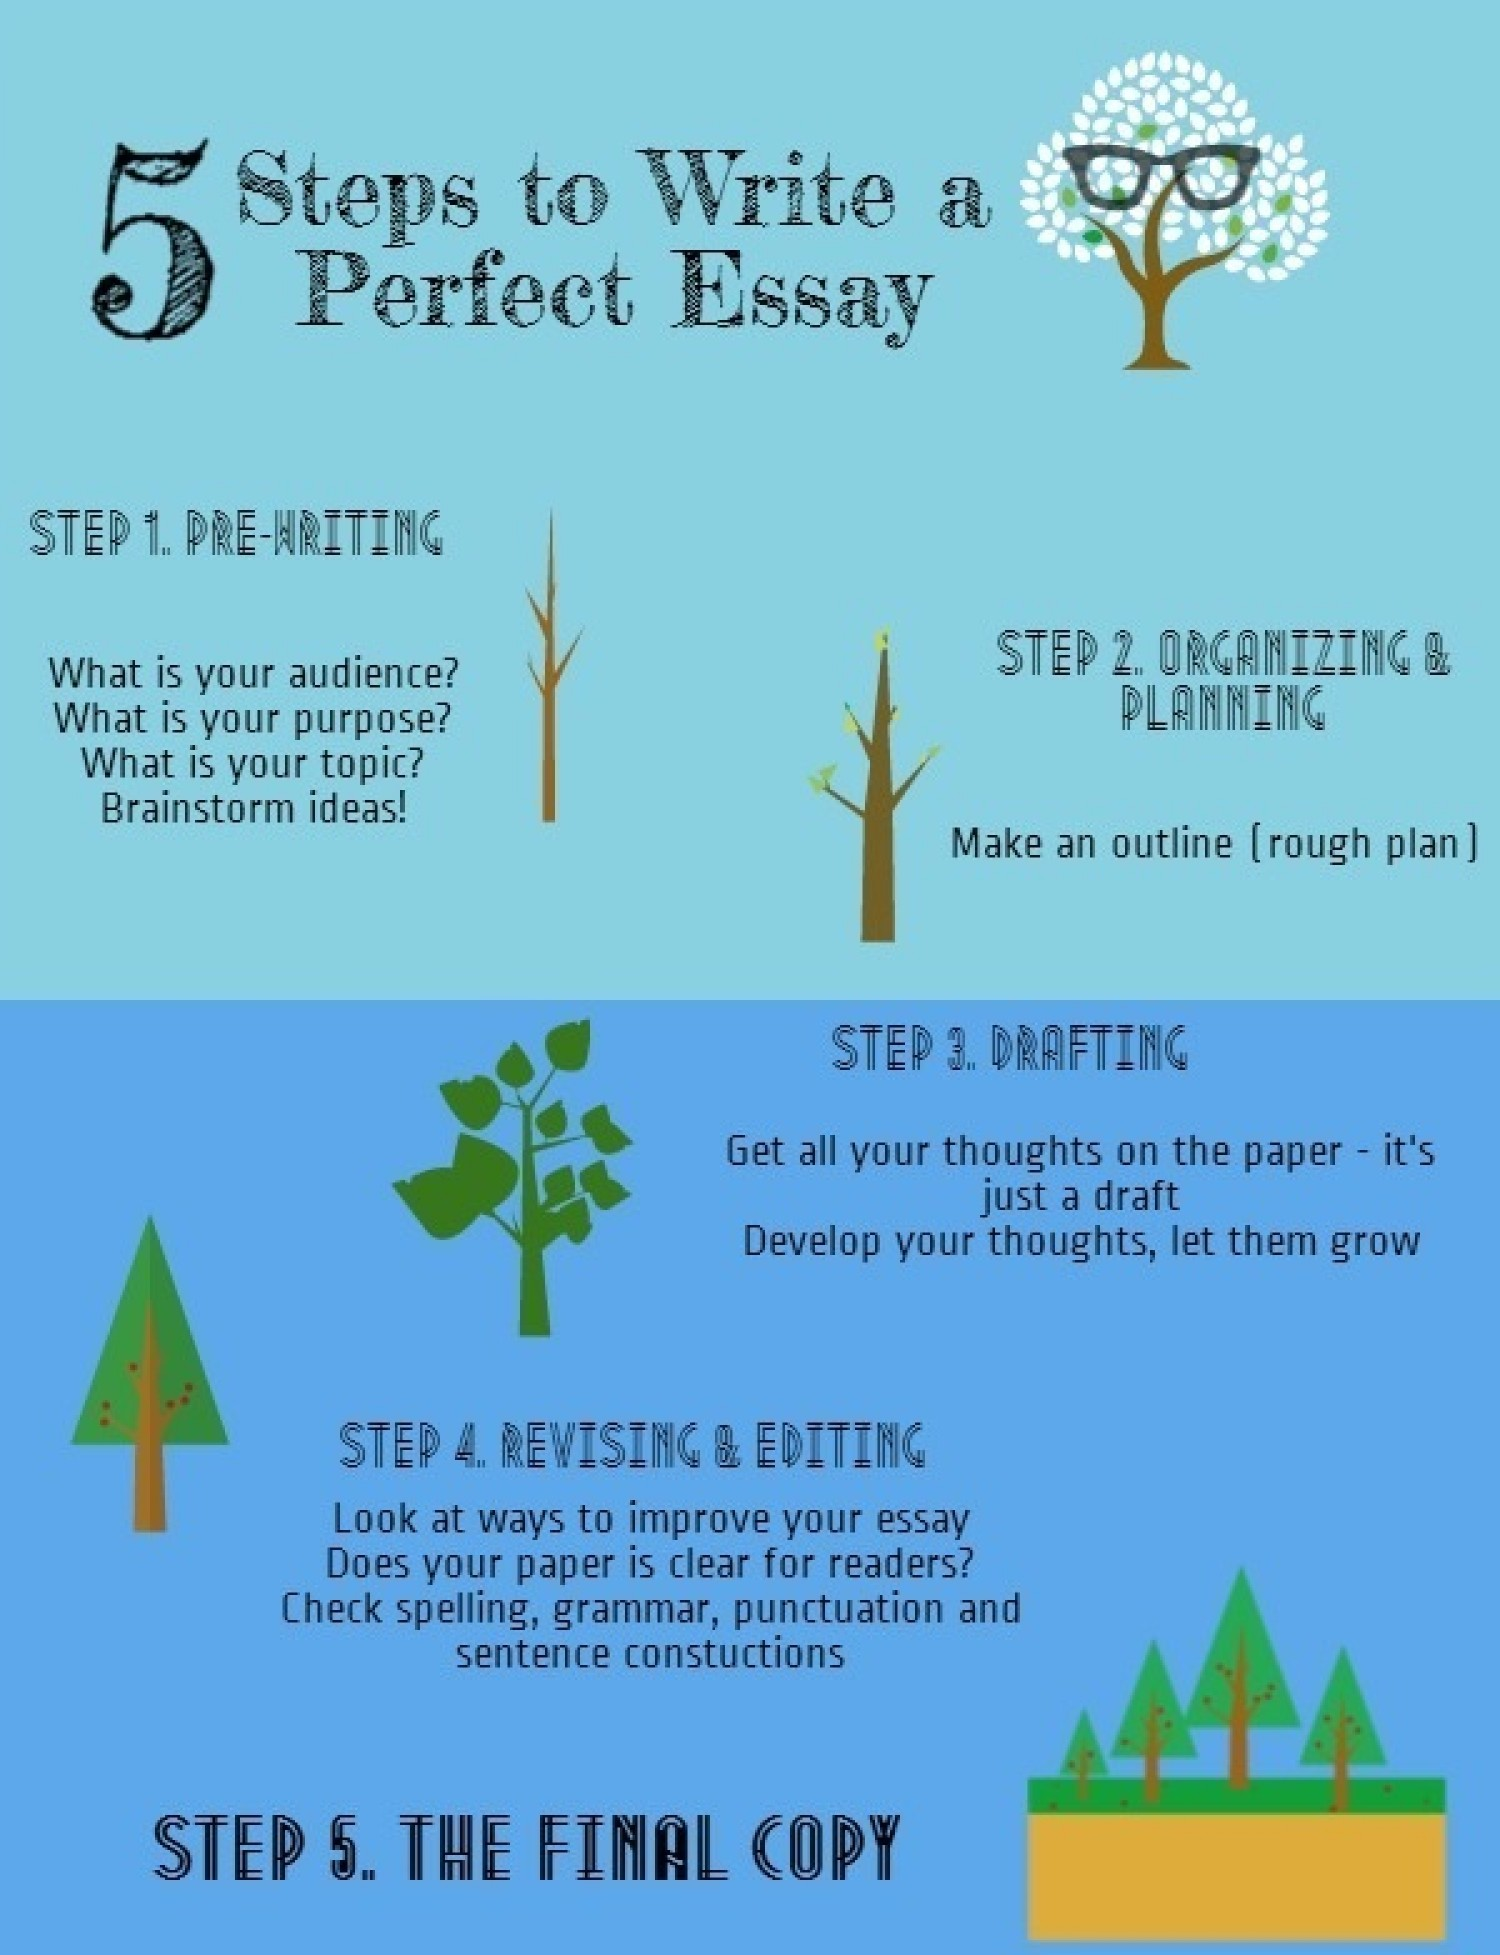 001 How To Write Perfect Essay Example Steps 547da311ad70a W1500 Remarkable A For College Good Admissions The Ged Test Full